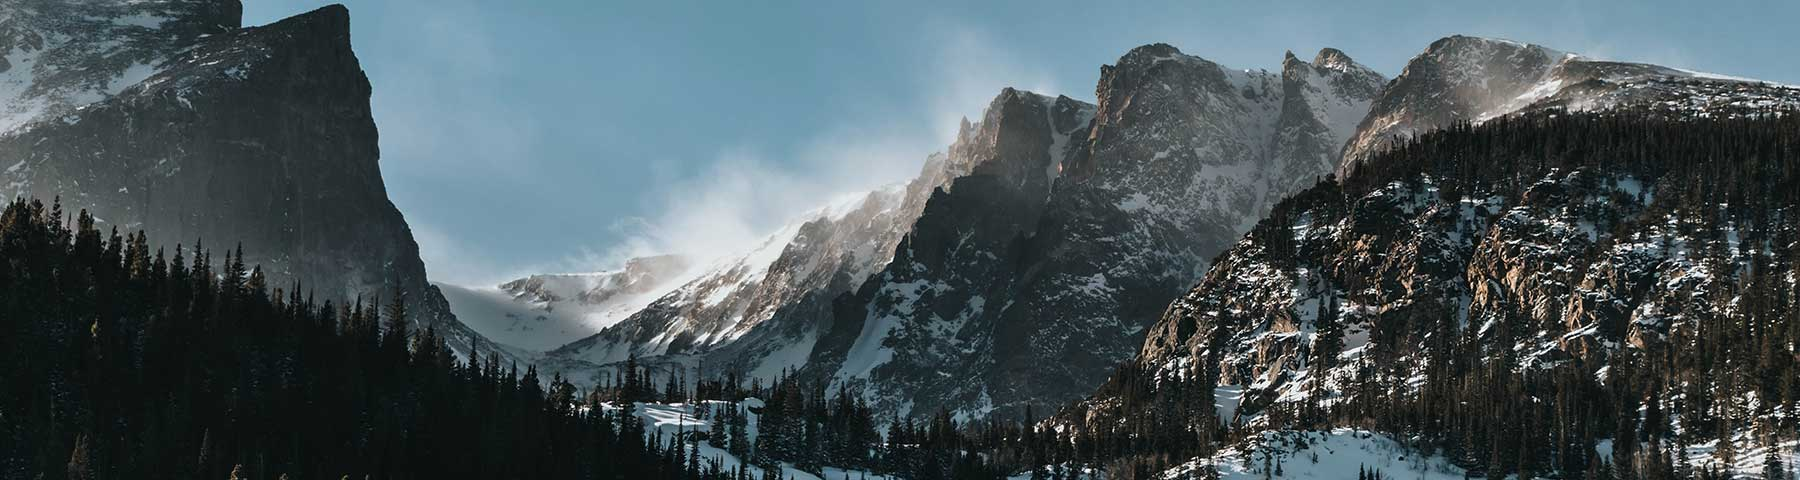 Photo of mountain with snow